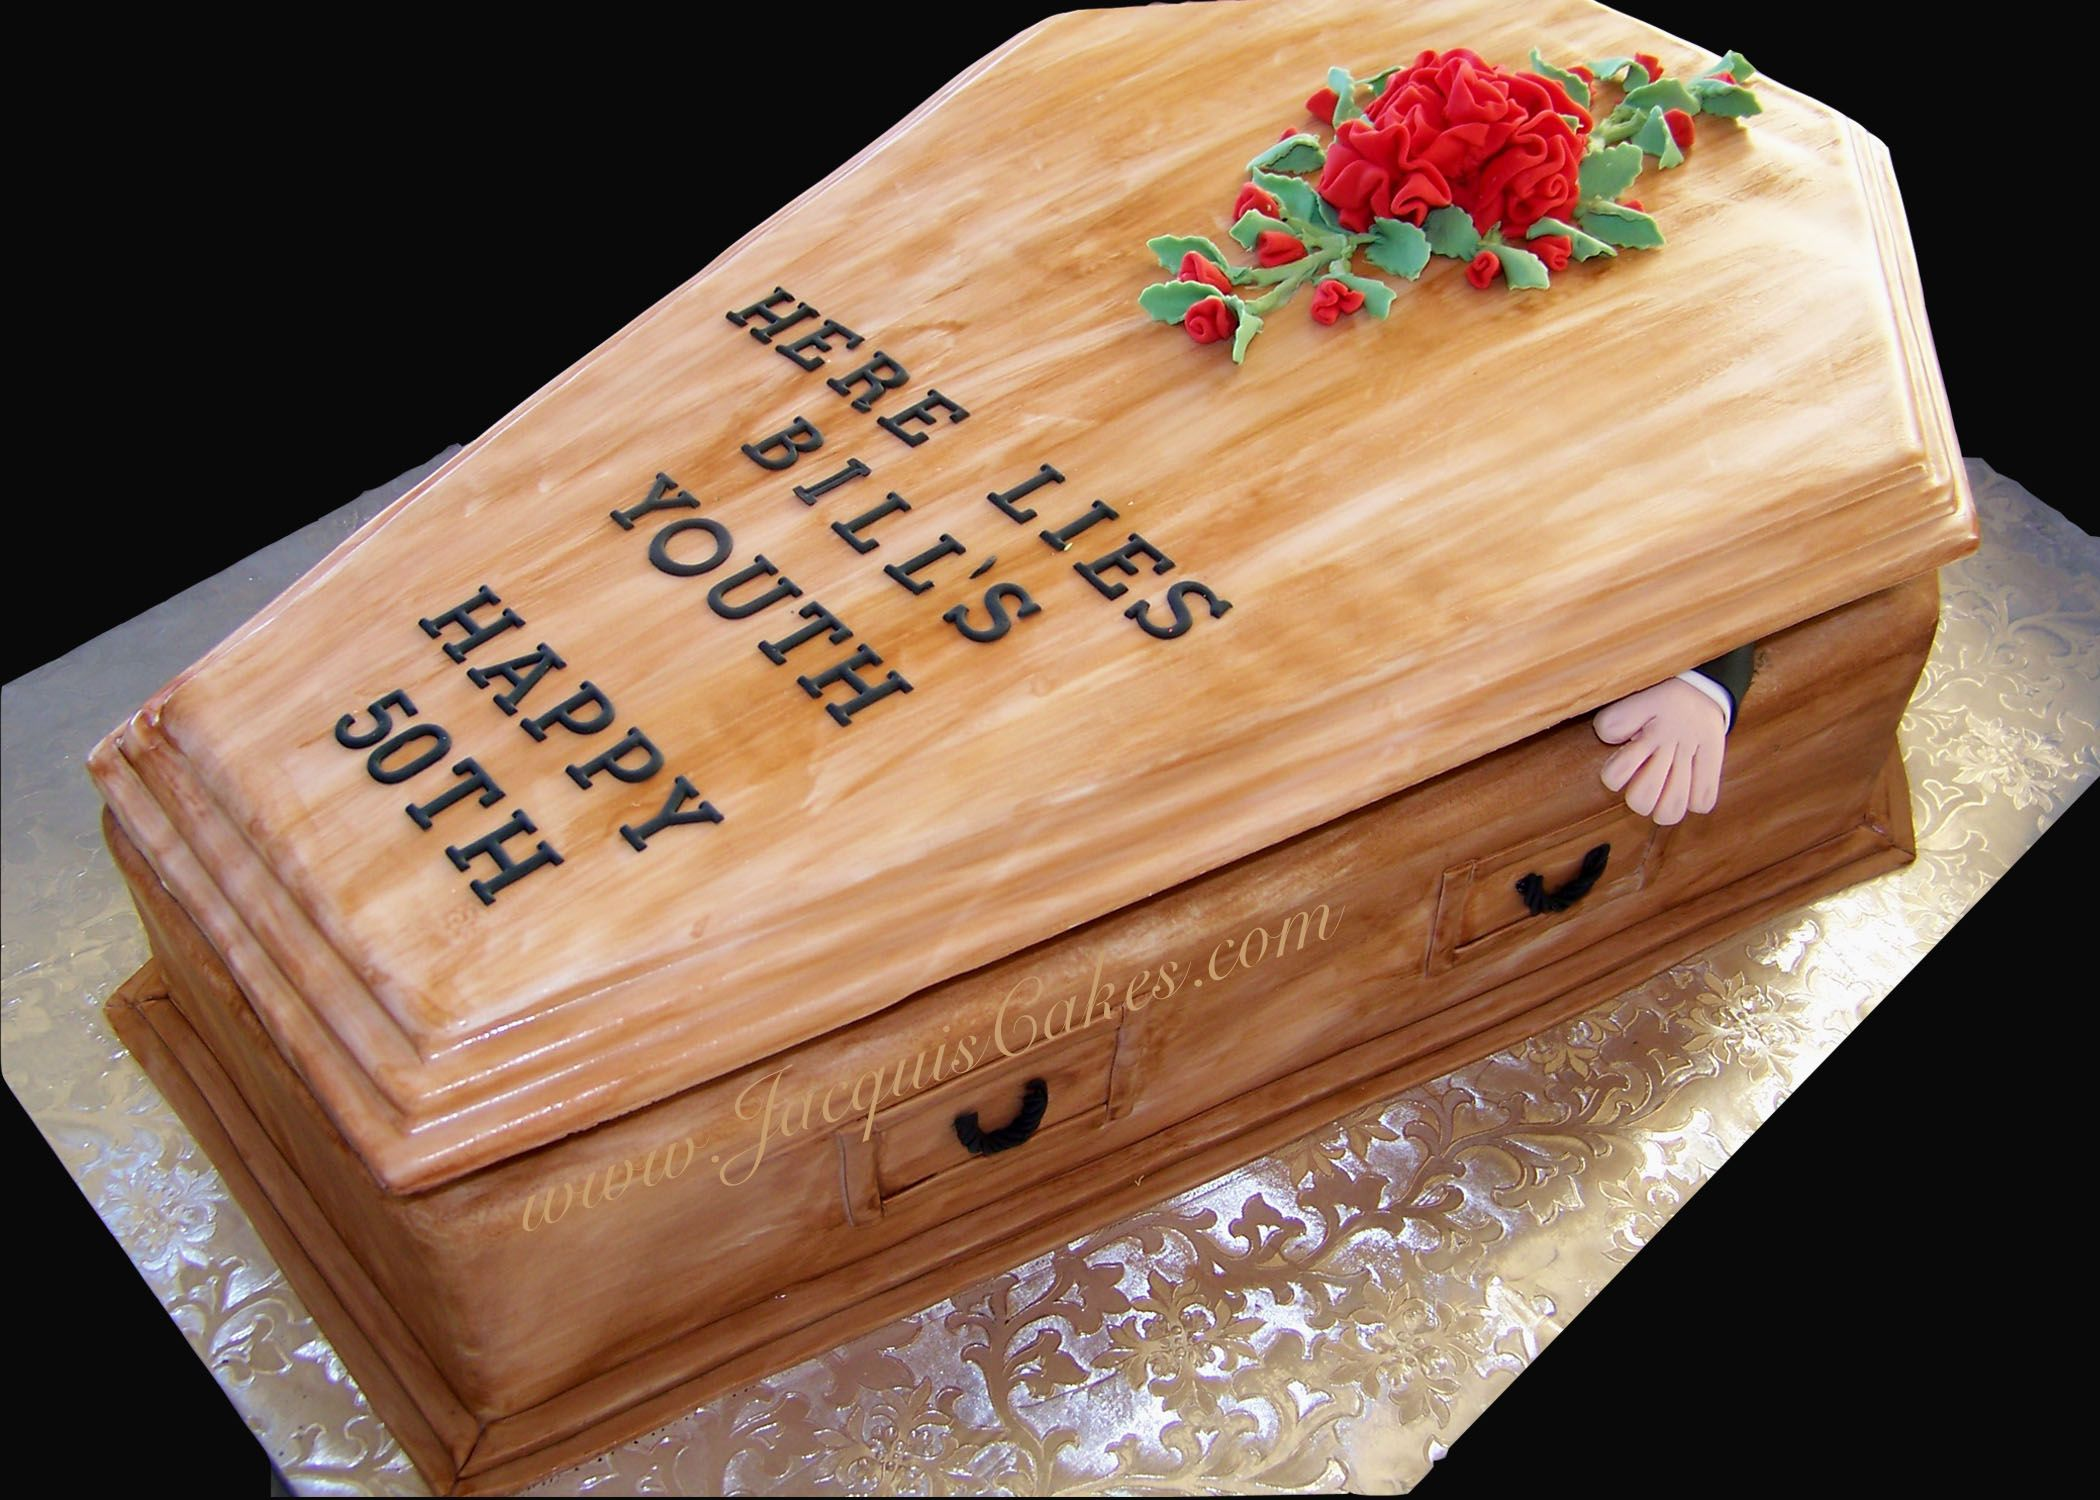 50th Birthday Cakes for Men Coffin Cake for a 50th ...